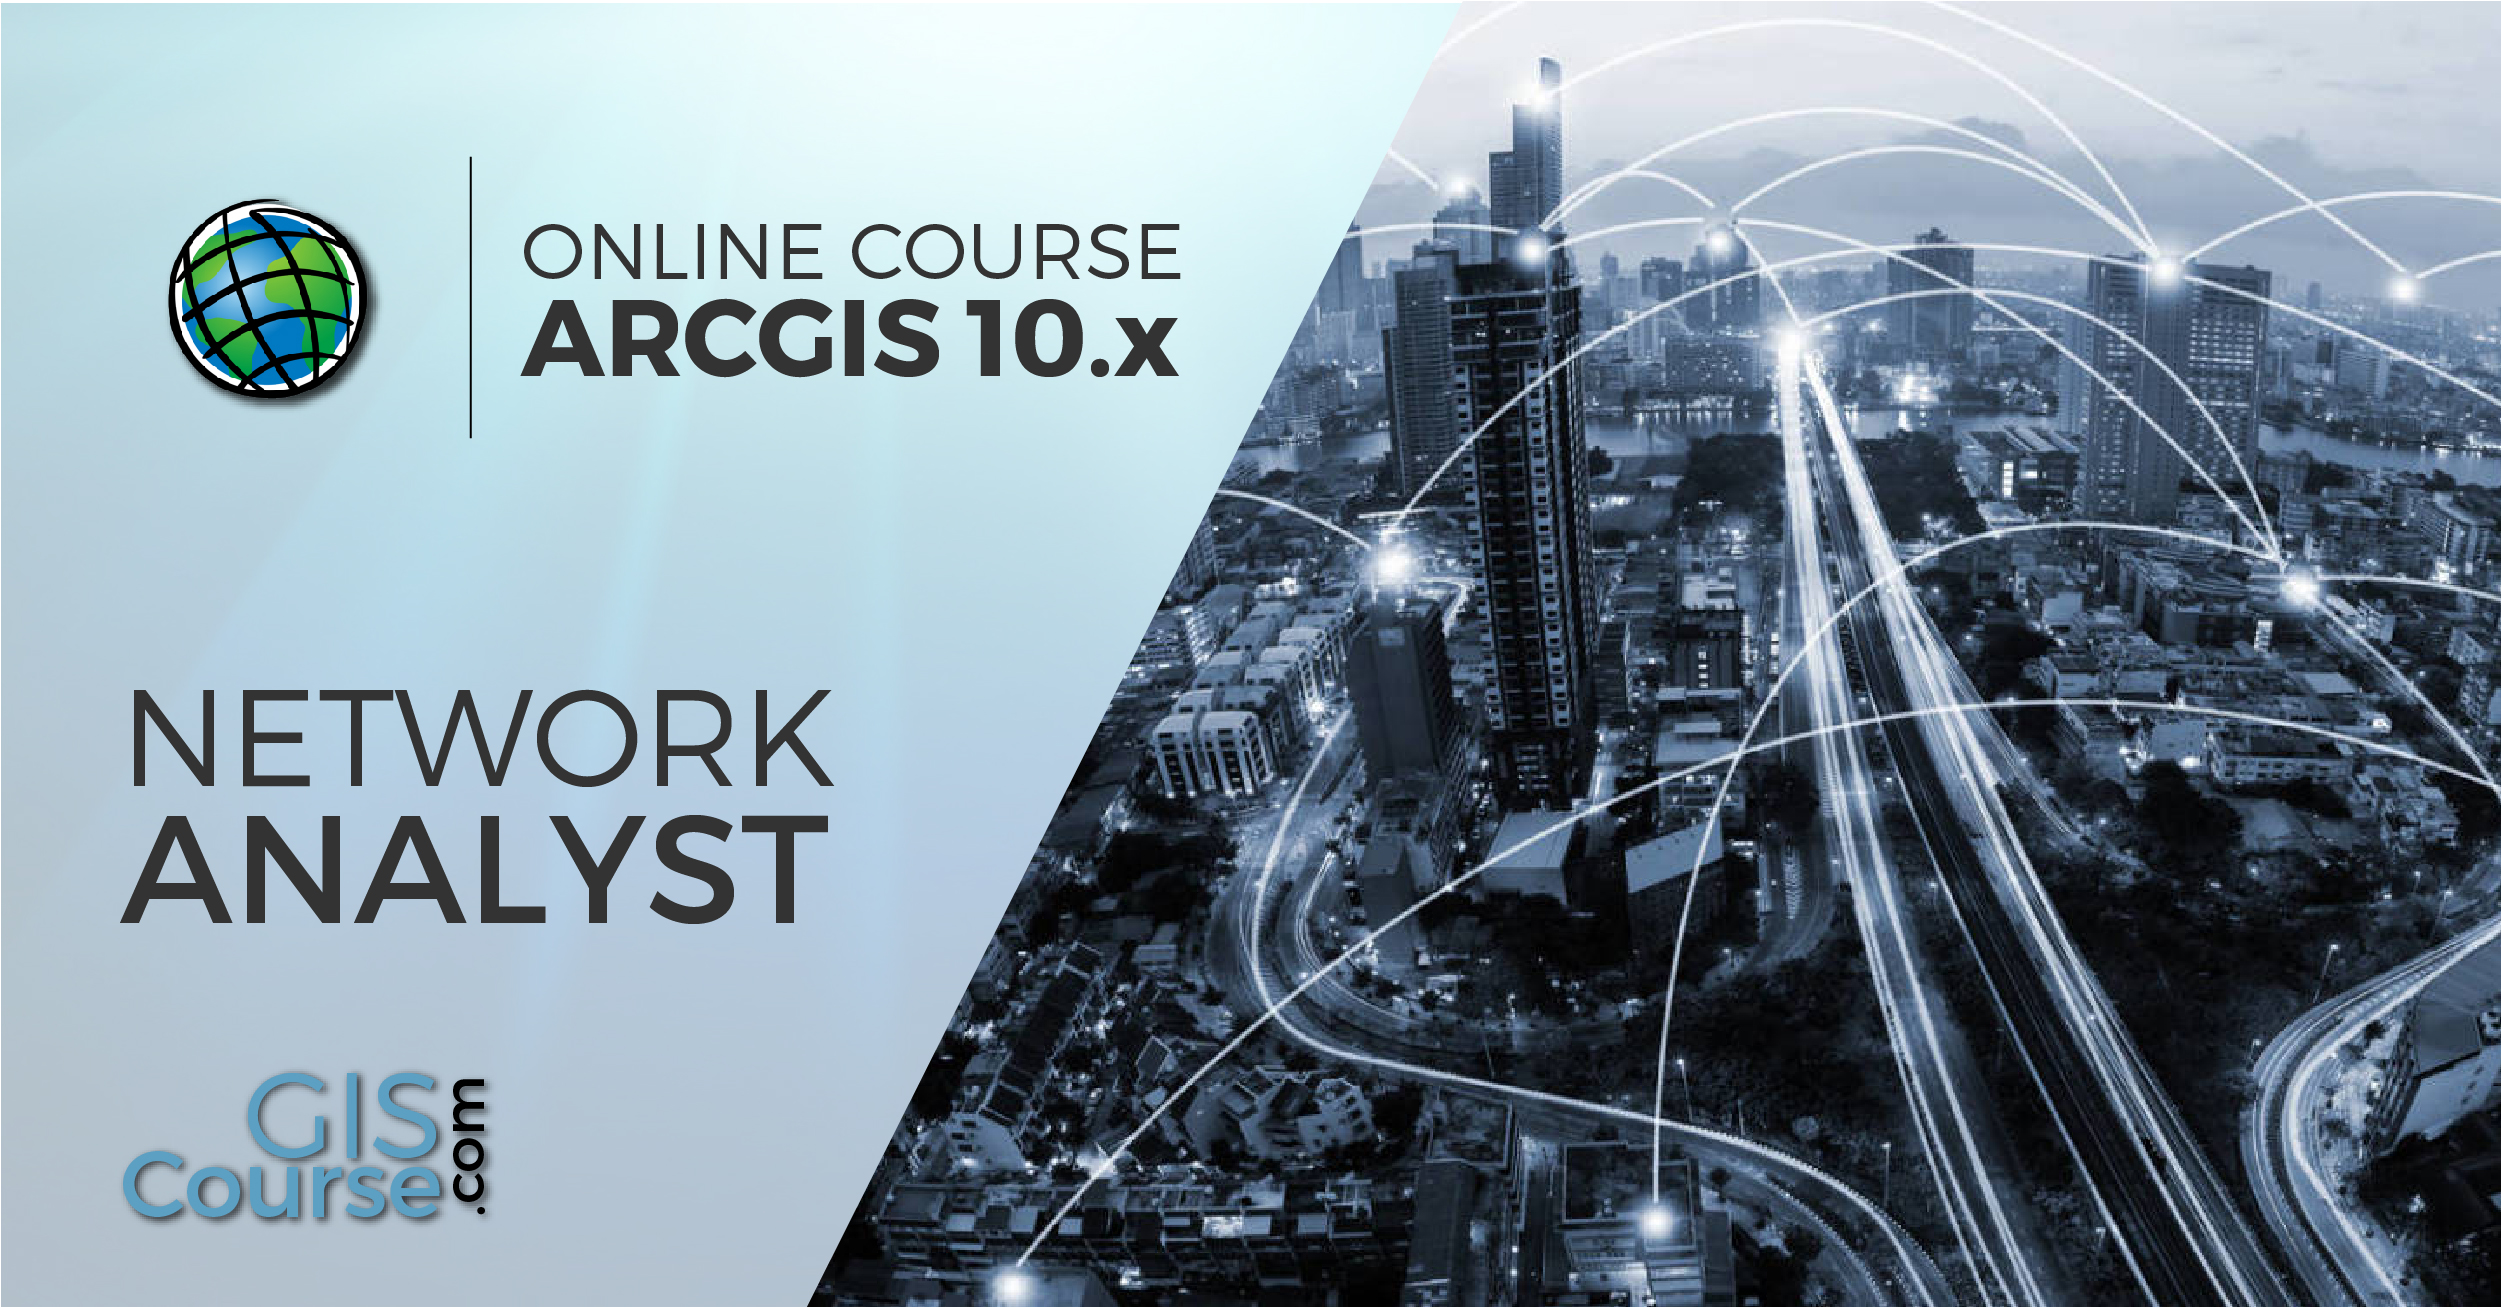 ArcGIS 10 x Course, Network Analyst Specialist - Online GIS